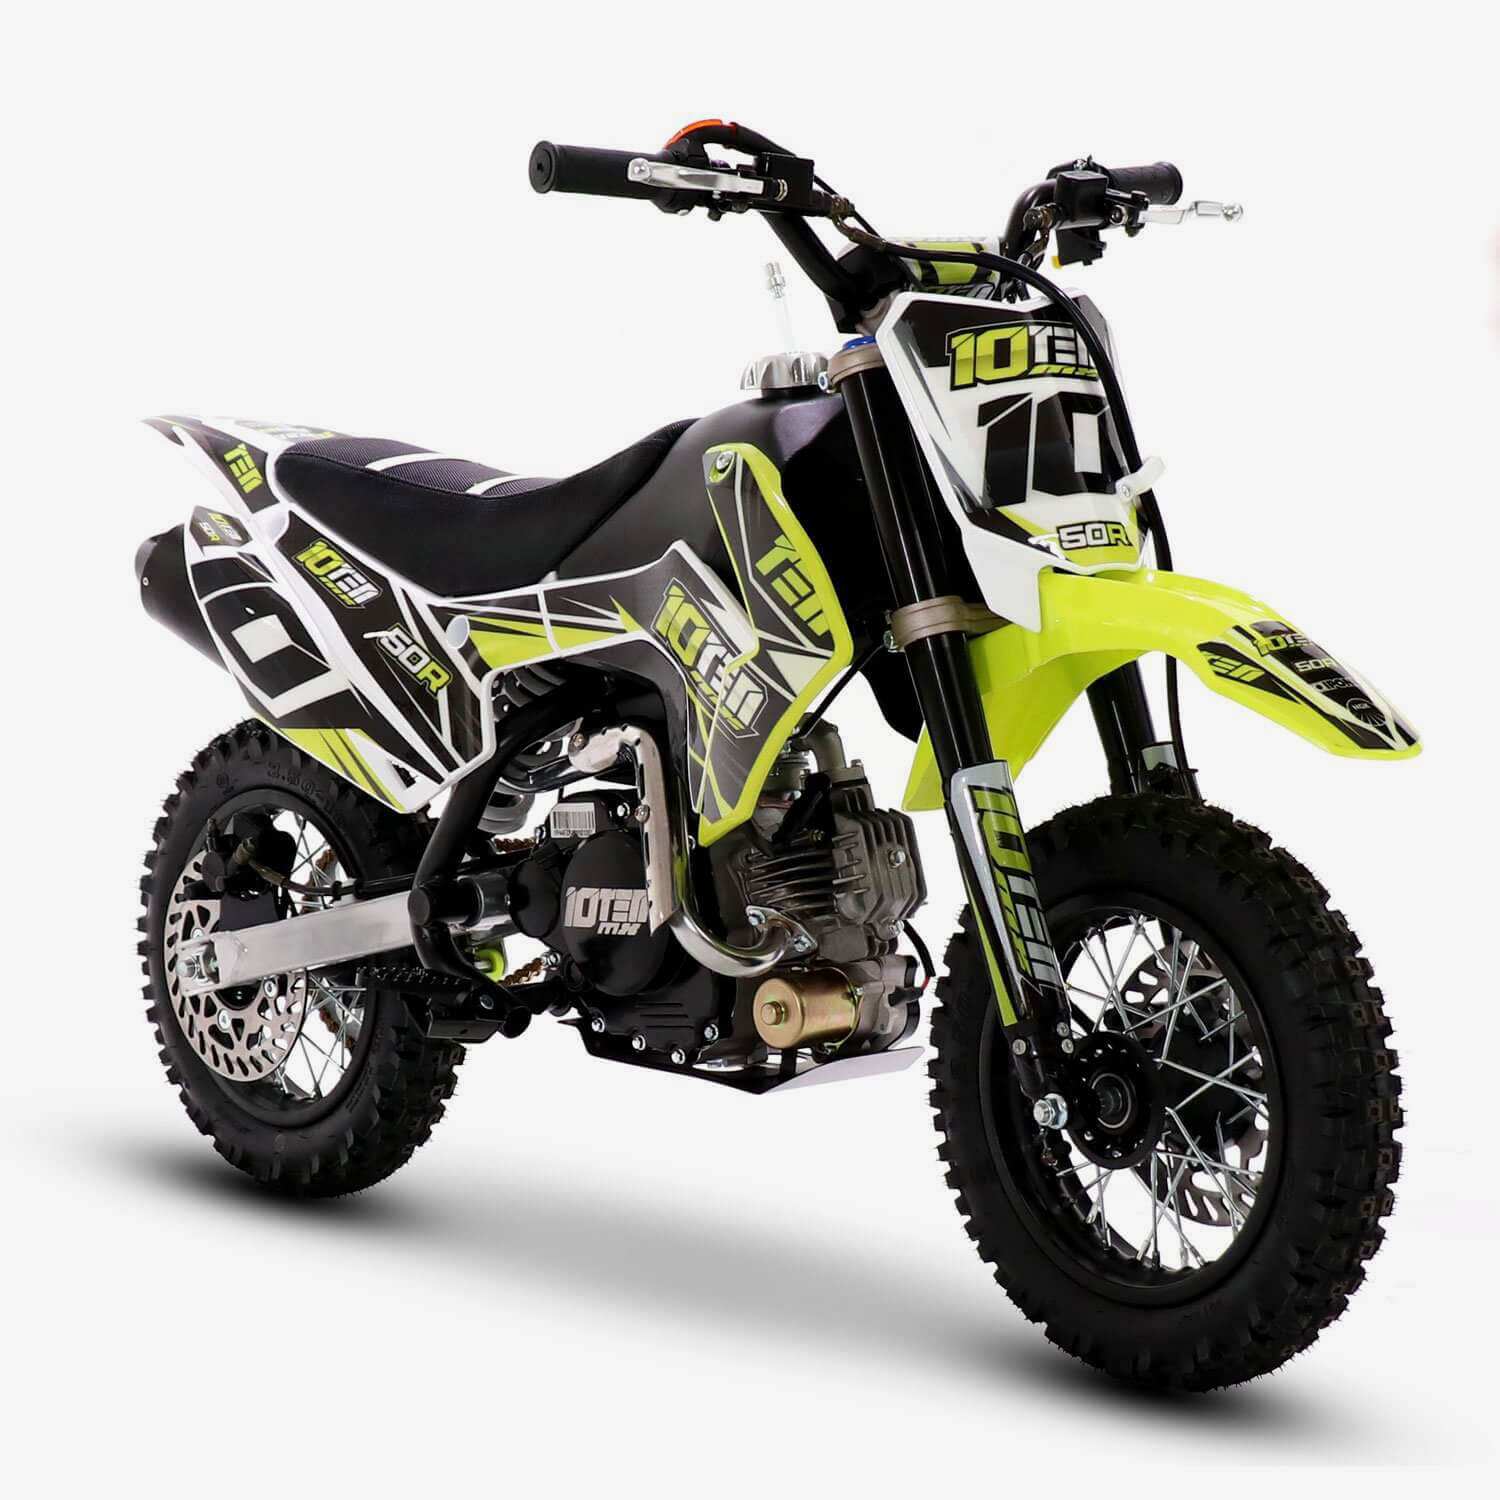 10TEn 10TEN 50R Junior Dirt Bike